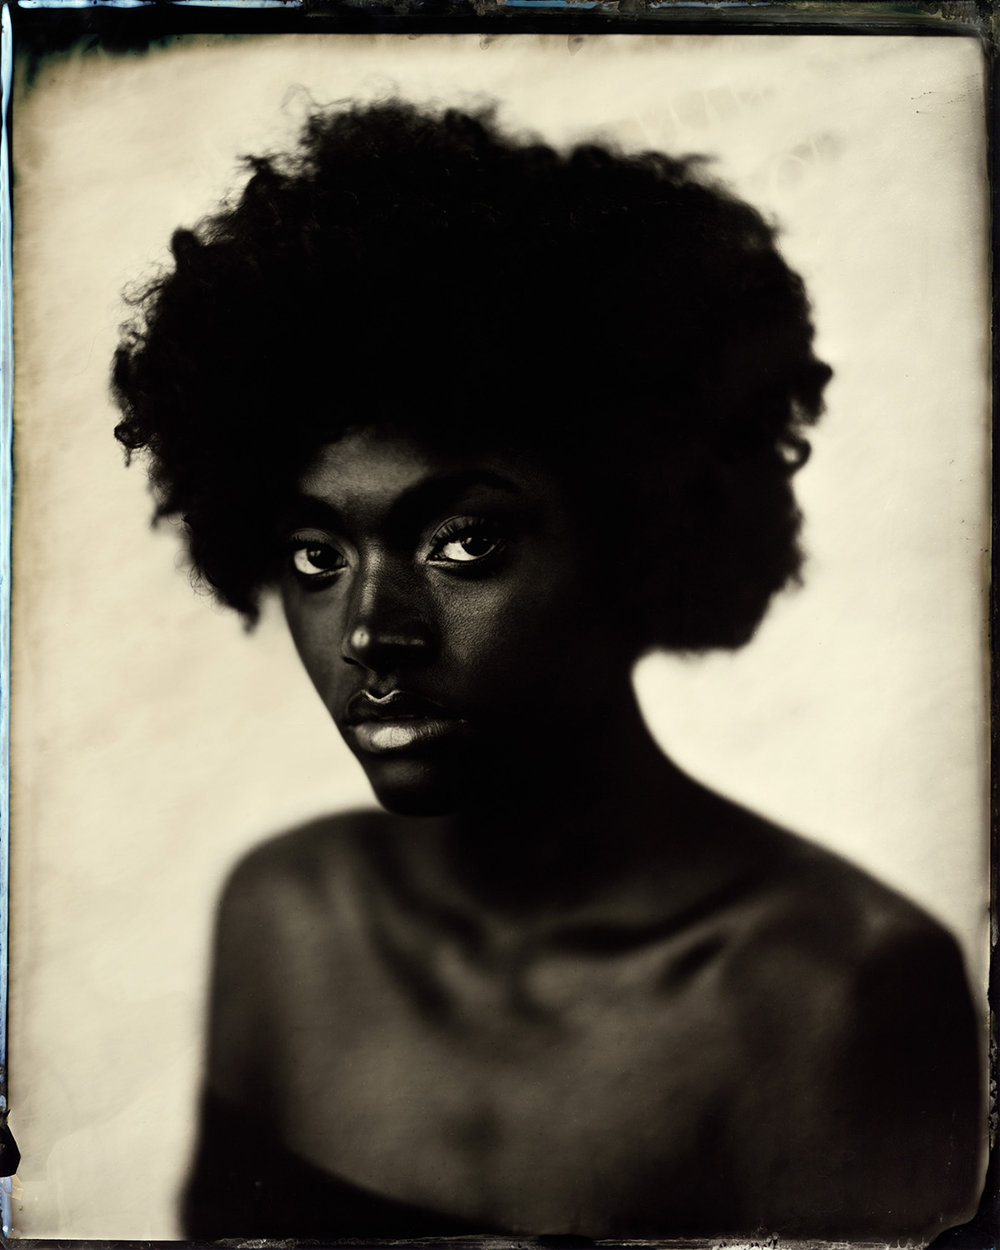 "Naomi on White - By: Ed Gately  ewgately.com   I have long been fascinated with the various ways the red pigmentation in our skin translates to collodion. Slightly under exposing skin tones can have dramatic effects. Pairing this with a high key background really shows off the the signature characteristics of the wet plate collodion process. Naomi was lit with 6' diffused parabolic umbrella and the background was lit with a zoom reflector from above. This 8x10"" tintype was captured with a Wollensak Vitax No. 5 on an E&HT Anthony 11x14"" Studio camera using hand mixed chemistry.  I am self-taught and creates my work following the traditions of the 19th century masters. Utilizing chemistry, light, and a little magic, my portraits are able to capture the soul of the sitter preserving them for many generations. In an age of photoshop and manipulation, my images force us to face who we are and to graciously accept it. In addition to portraits, my landscape work connects the present to the past in vivid detail."